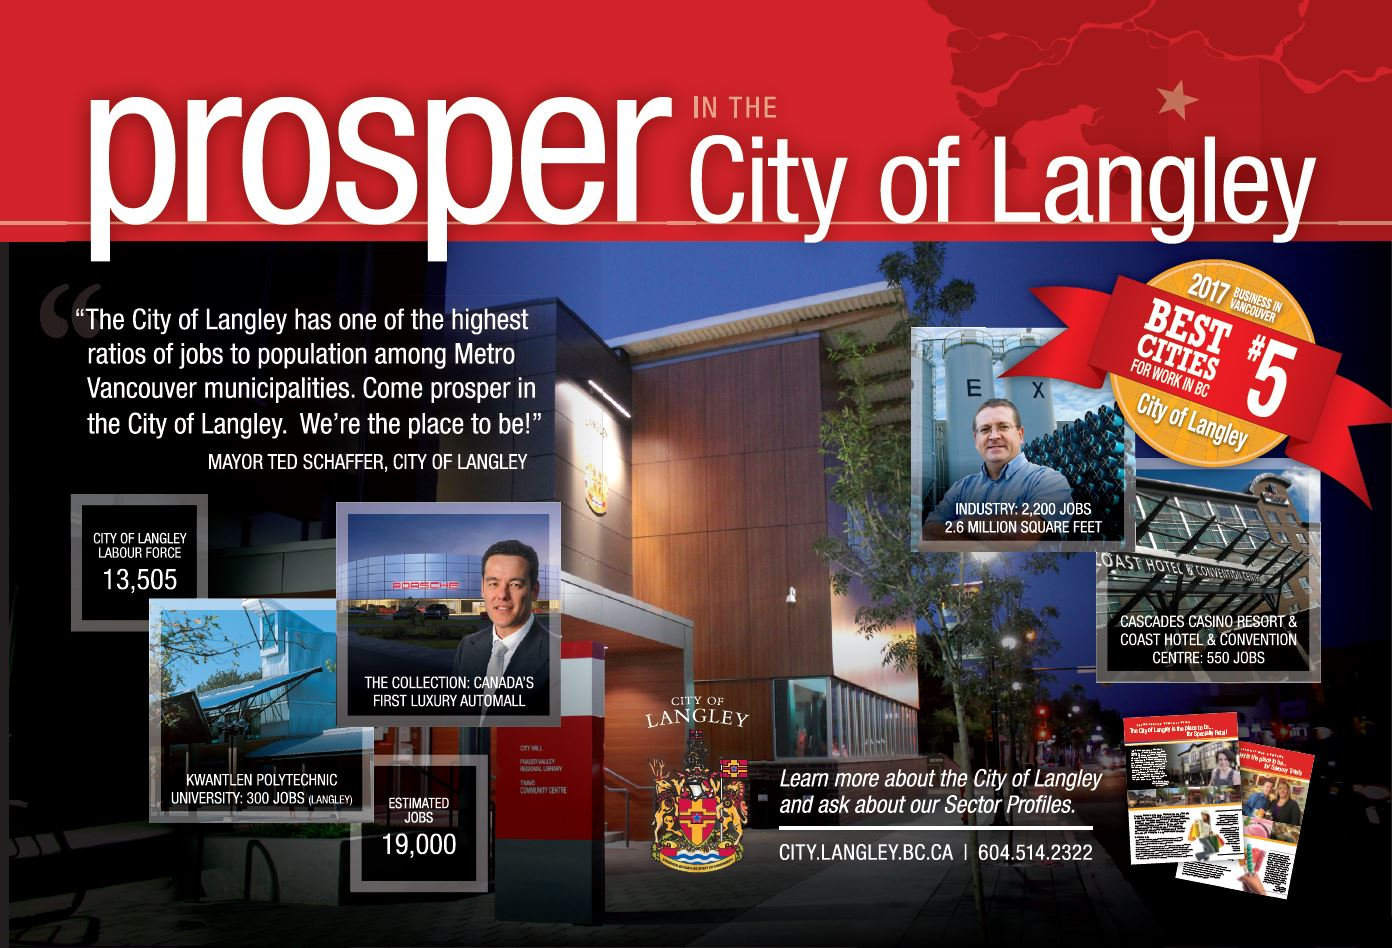 Prosper in the City of Langley